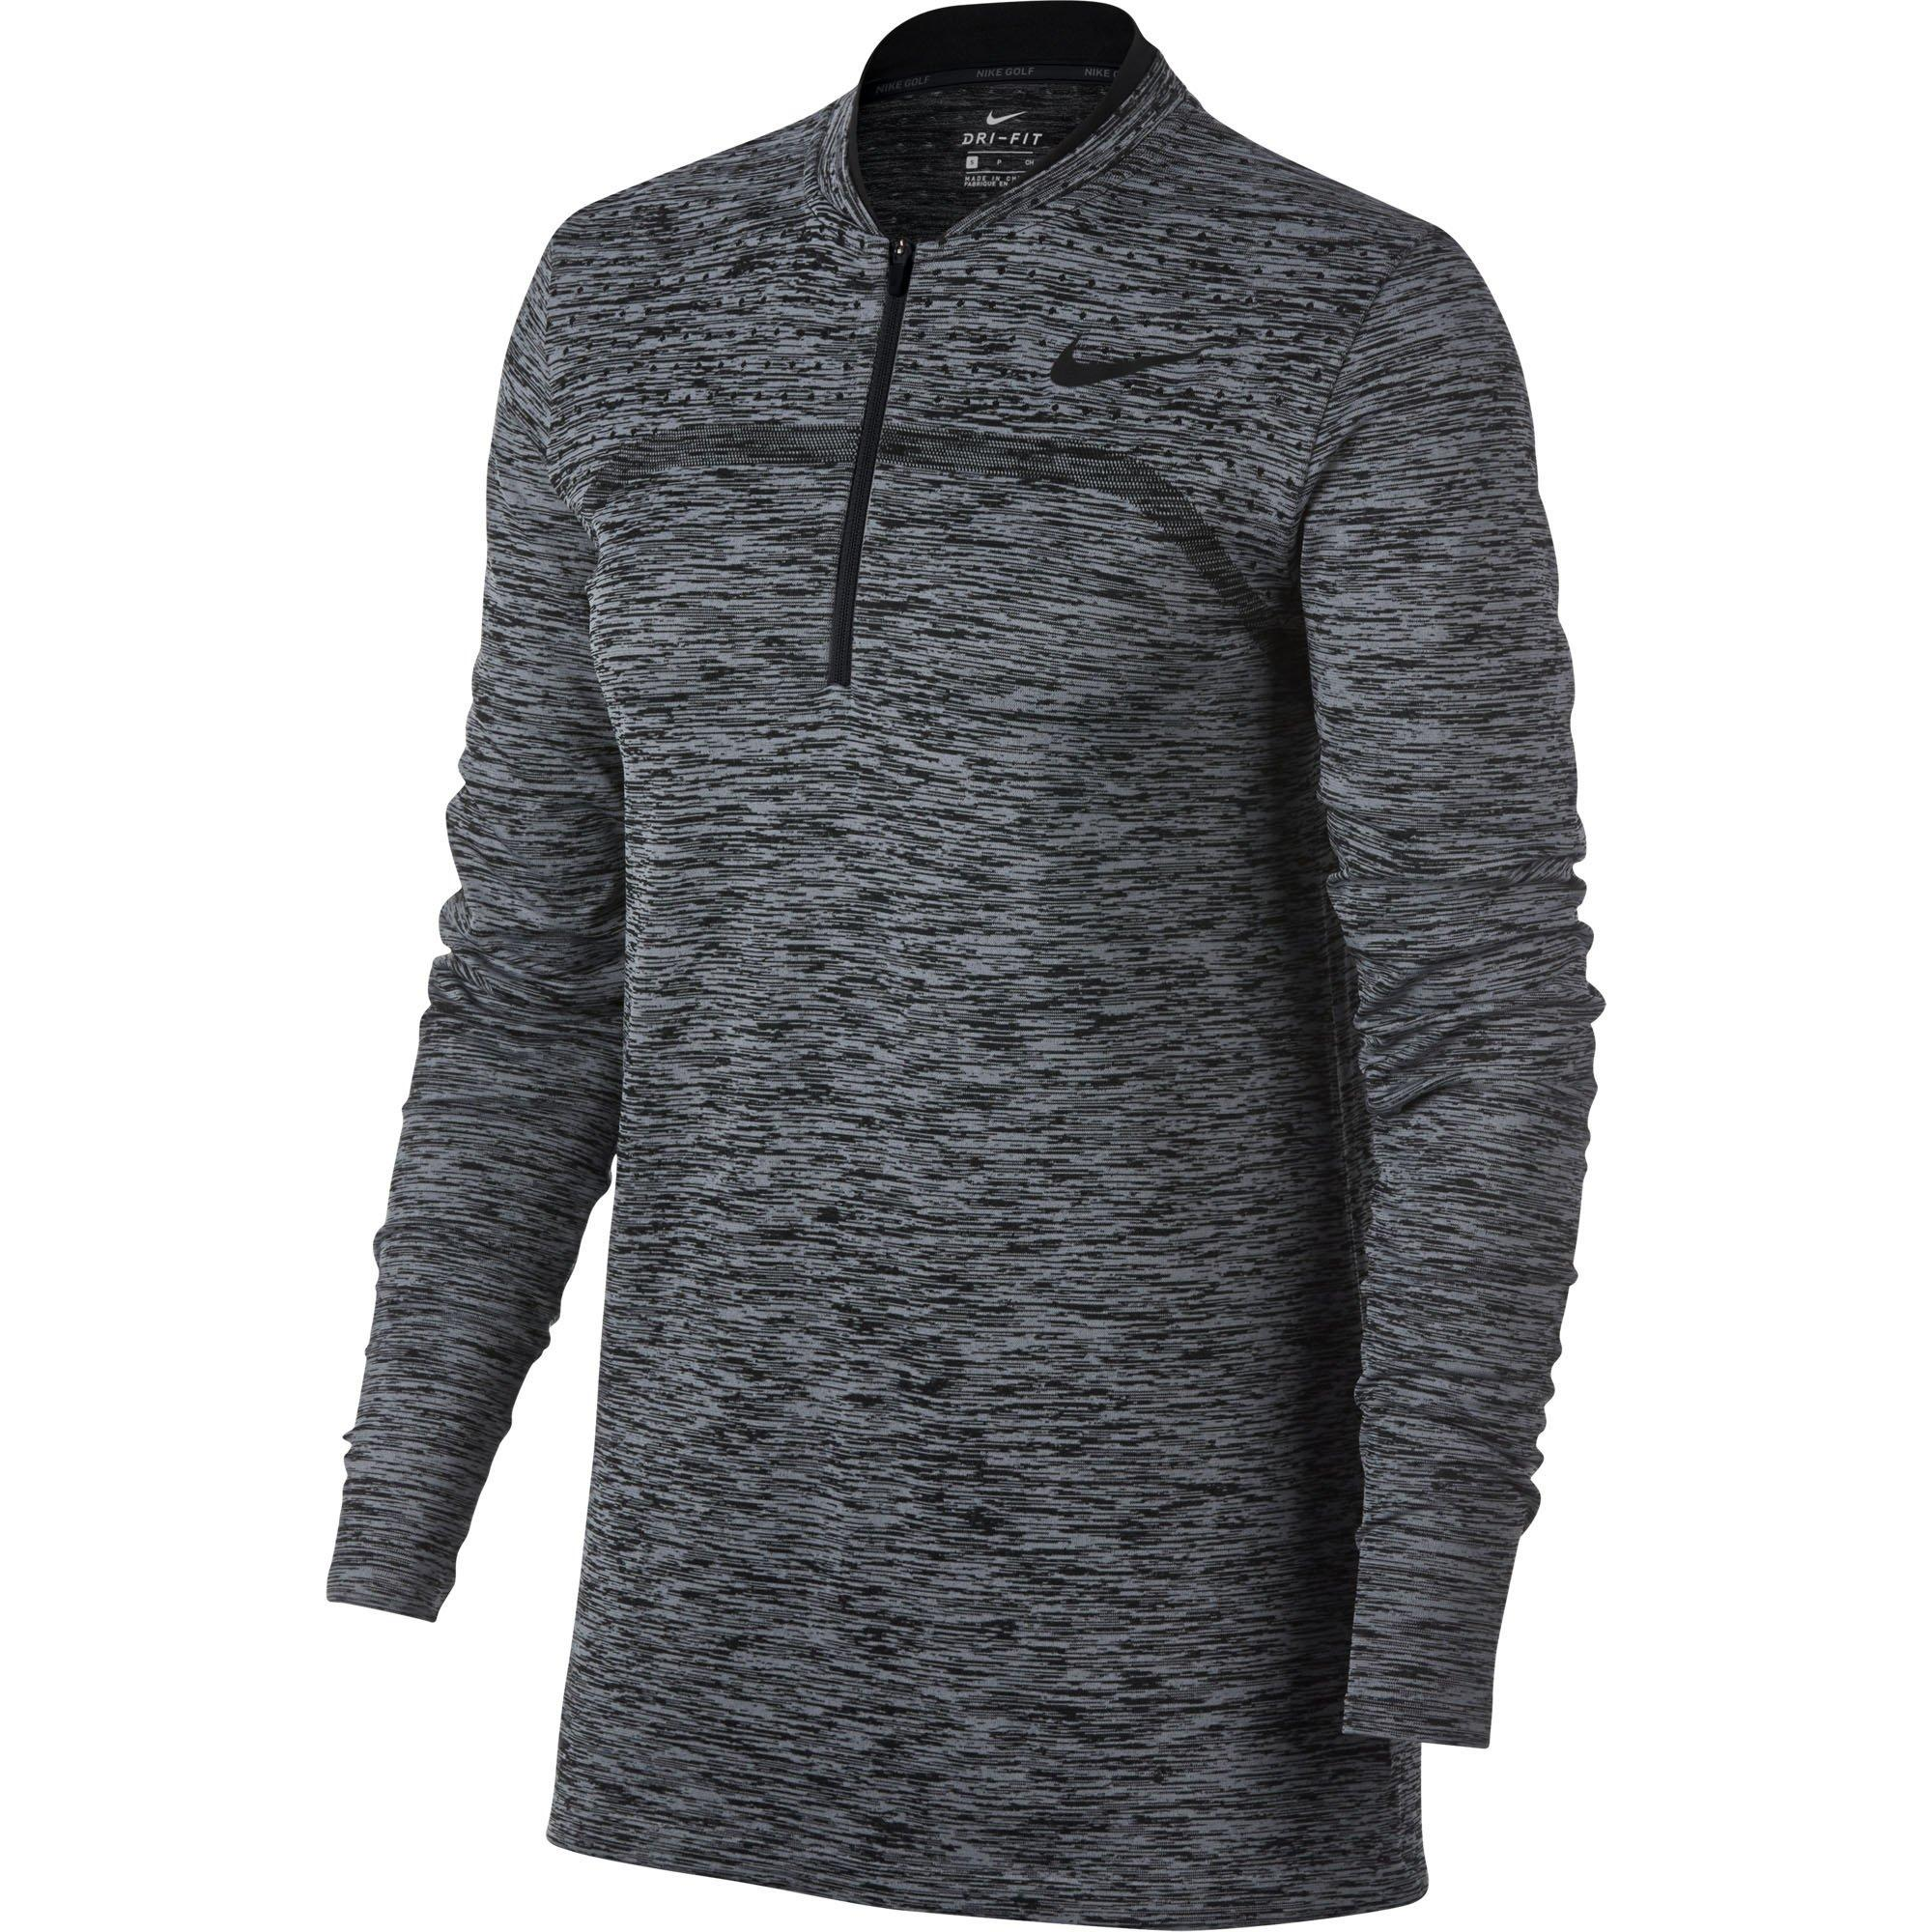 Women's Dri-Fit Seamless Quarter Zip Layering Pullover